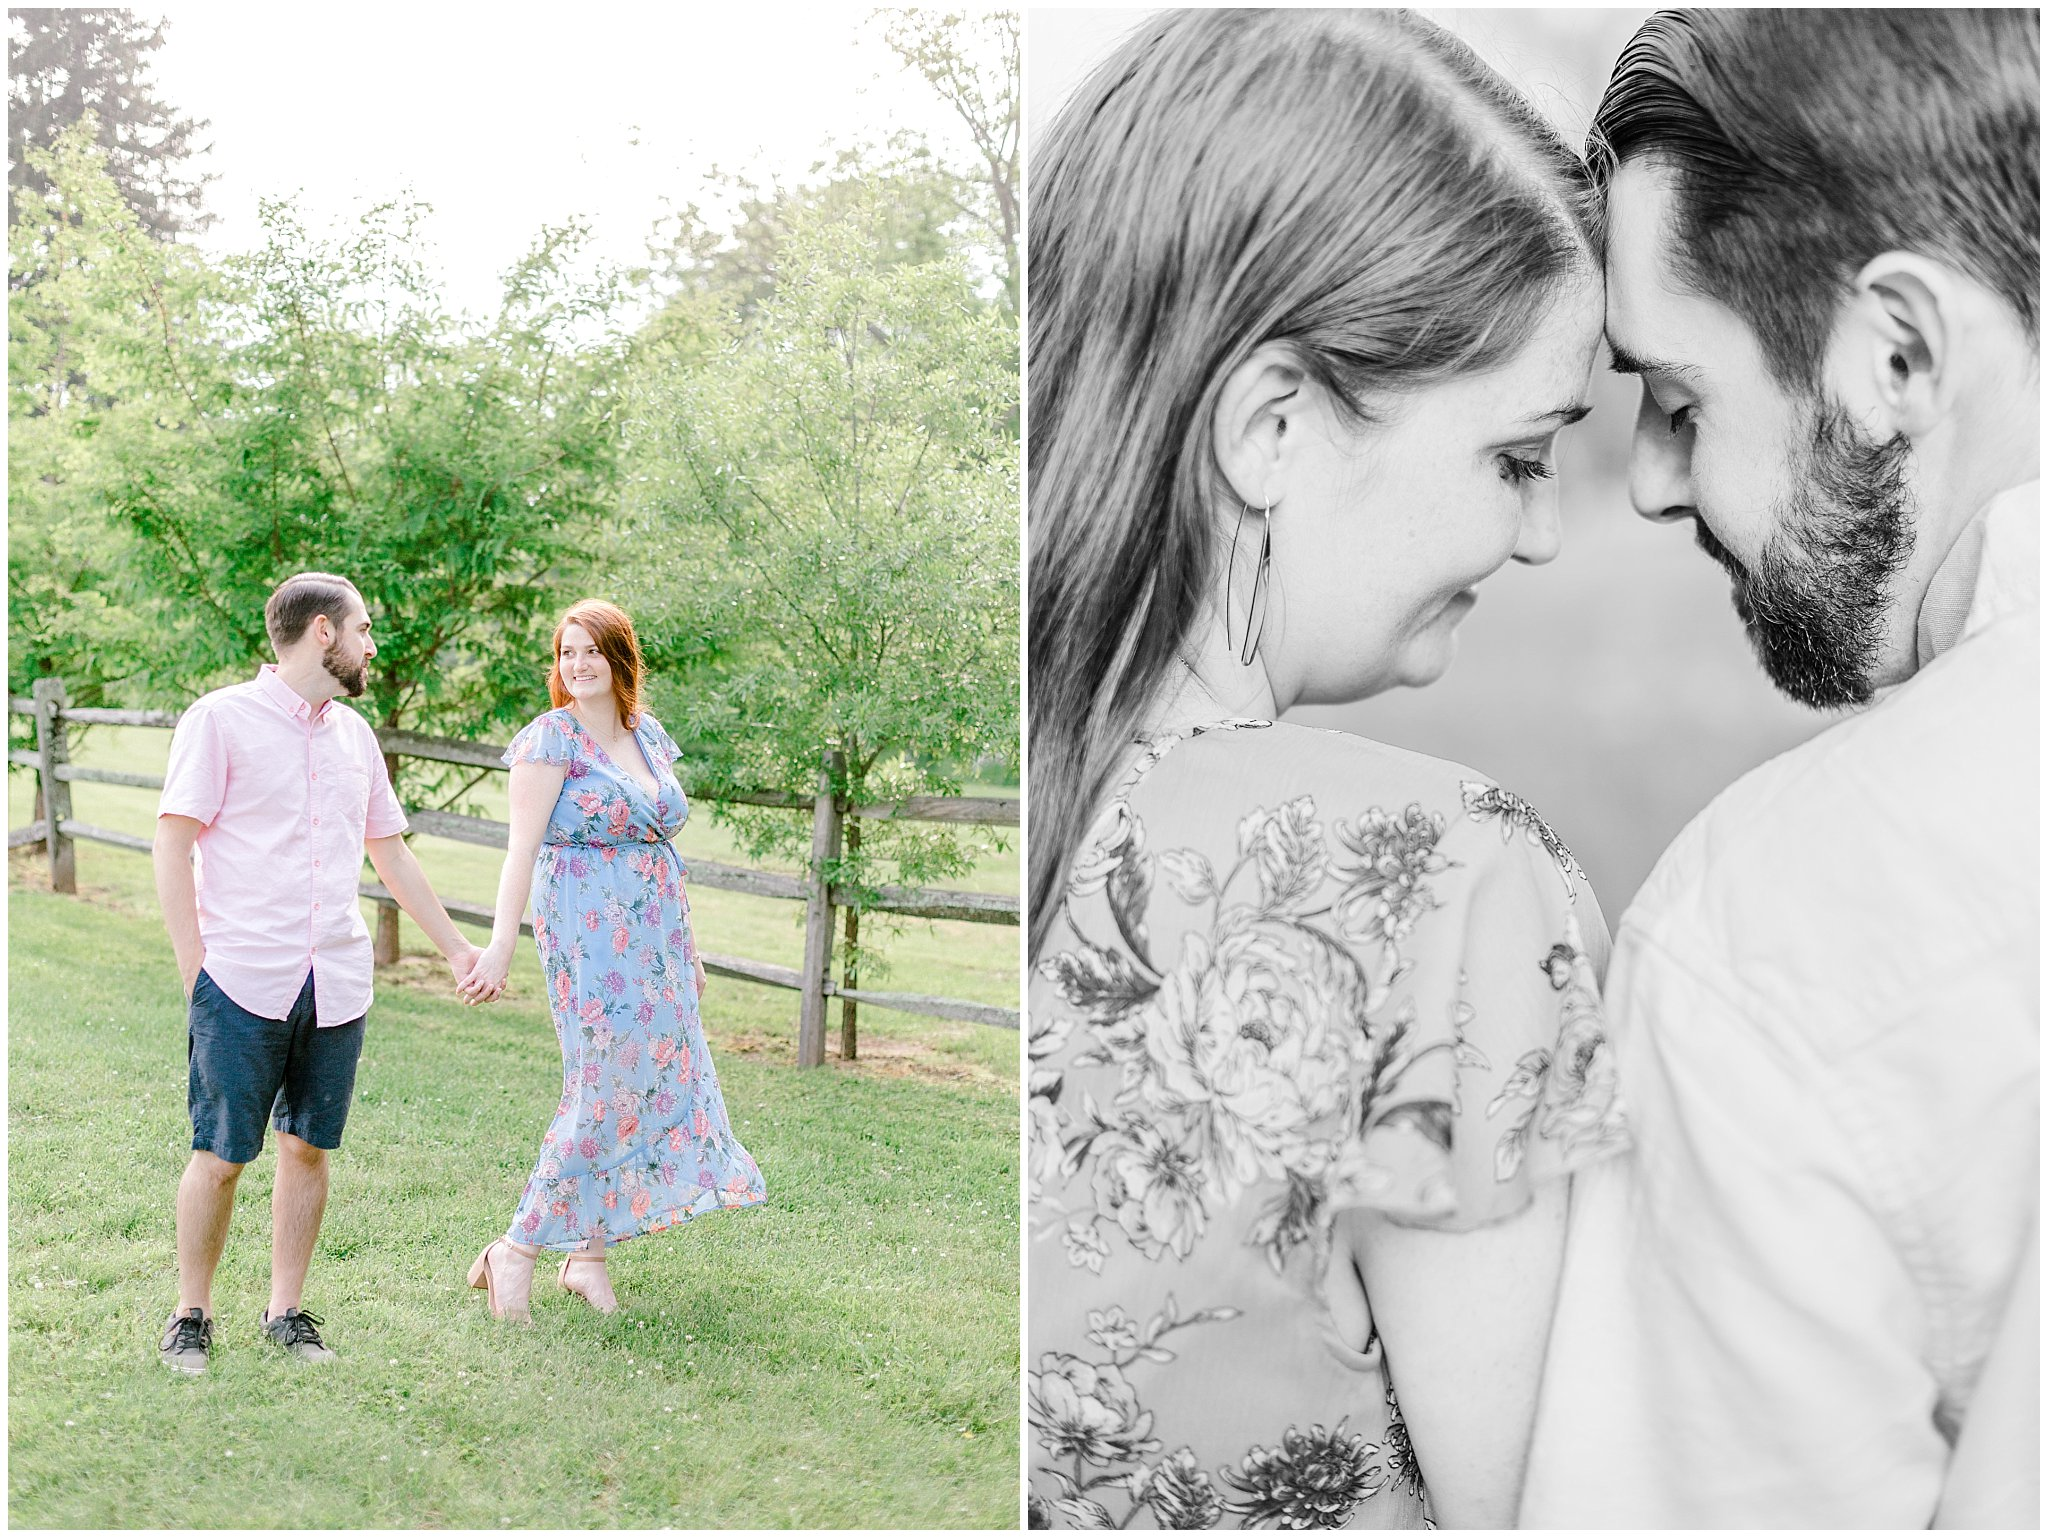 Manor house at prophecy Creek Blue Bell PA wedding venue summertime field engagement session lehigh valley based wedding and lifestyle photographe_0017.jpg